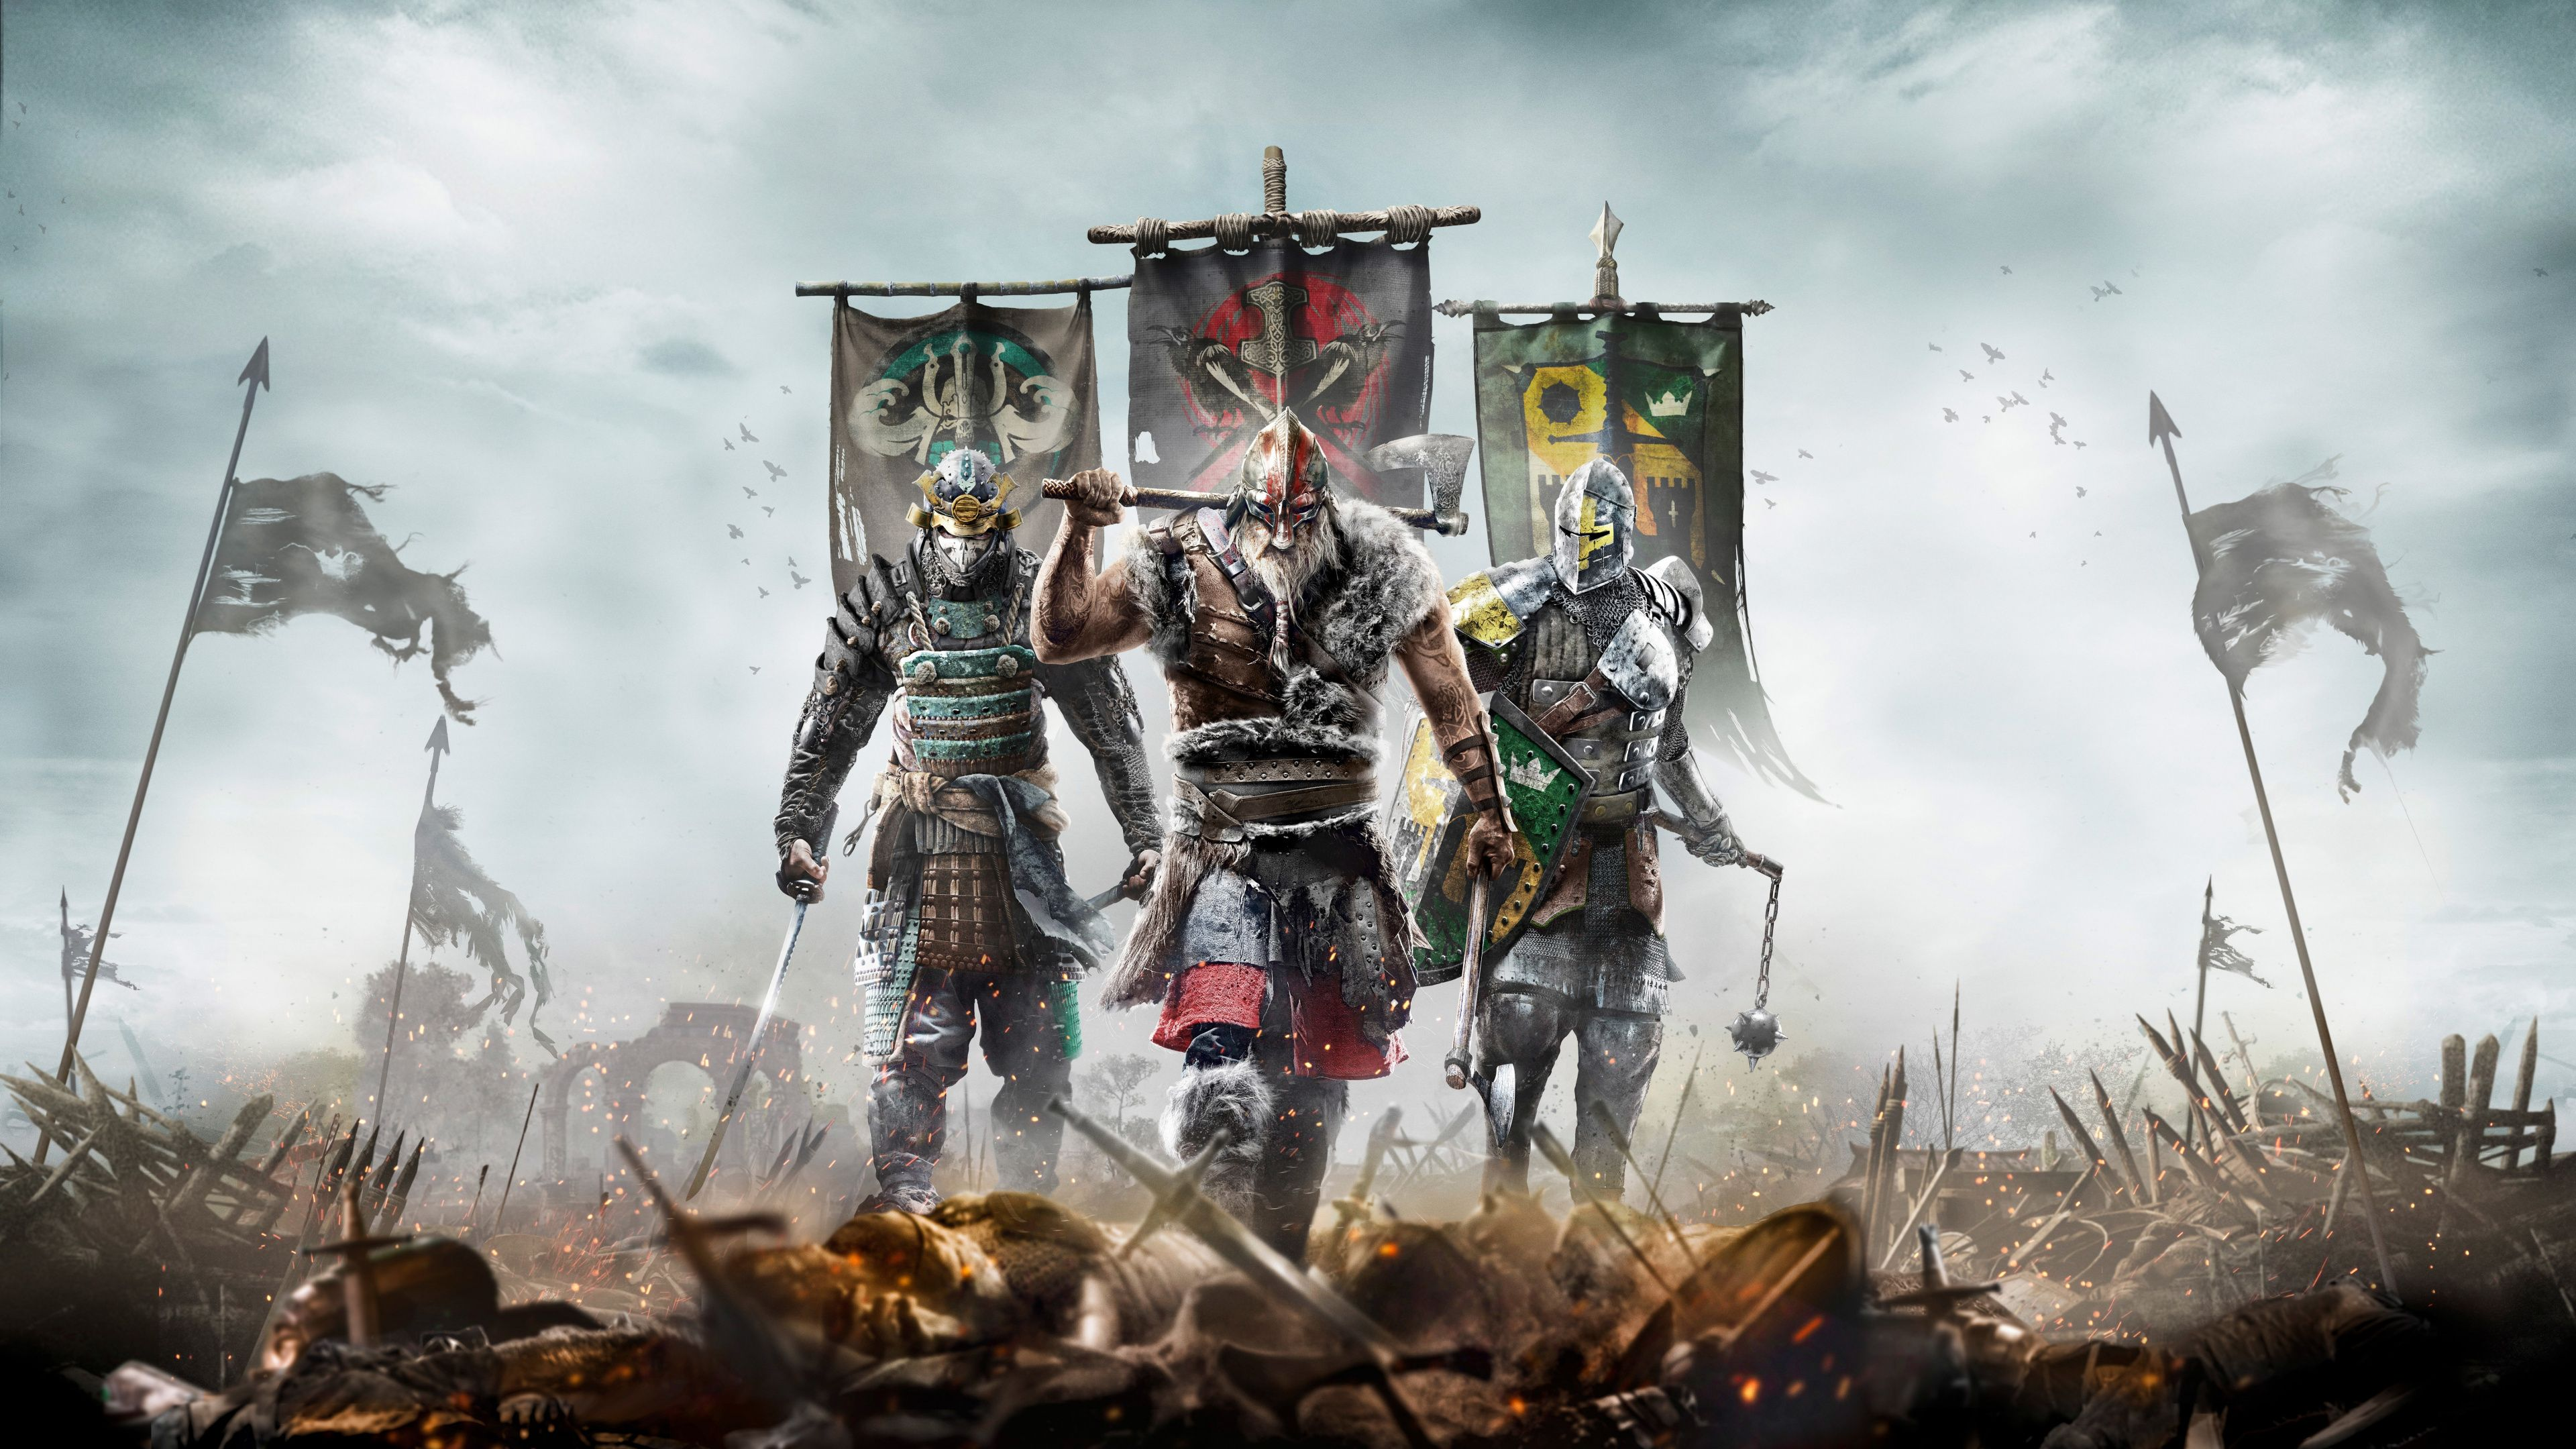 Downaload For Honor Video Game Warriors Wallpaper For Screen 3840x2160 4k Uhd 16 9 Widescreen For Honor Samurai Warriors Wallpaper For Honour Game